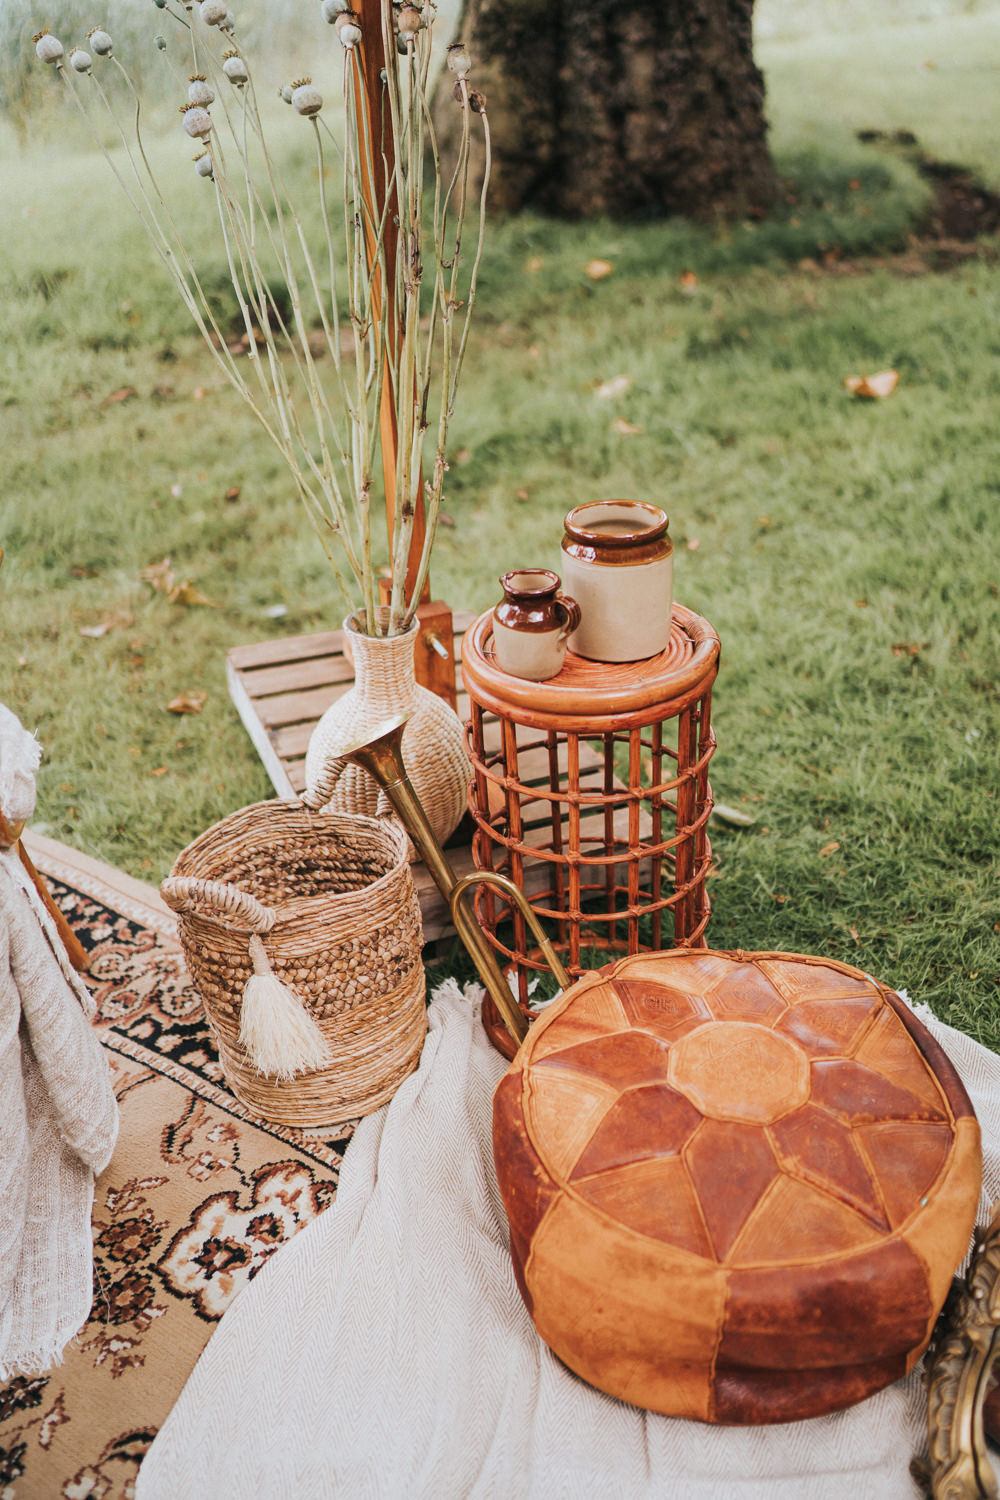 Baskets Decor Poppy Sead Heads Flowers Naked Tipi Wedding Ideas Holly Rose Stones